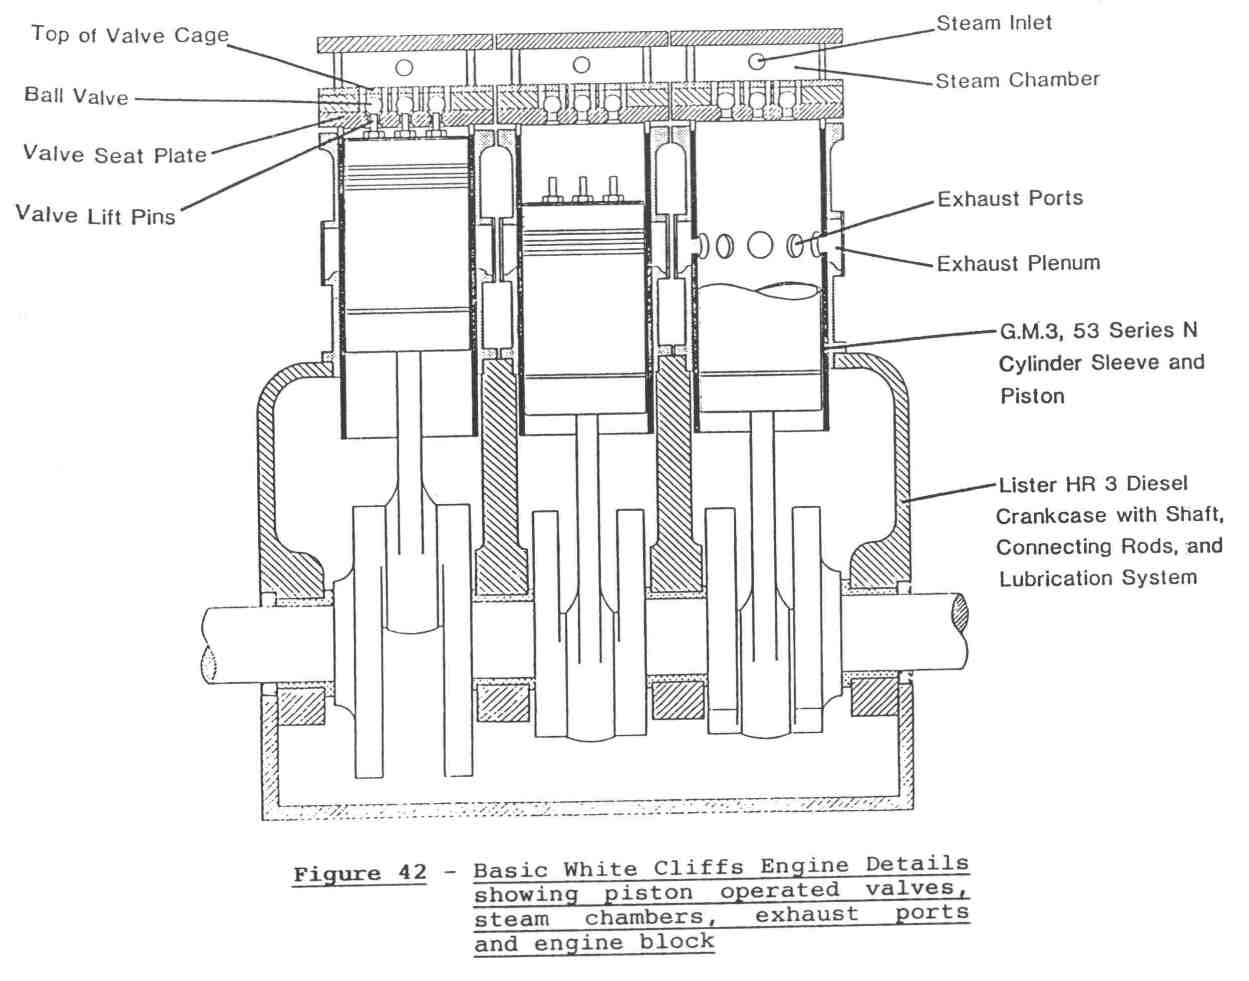 Lister Engine Diagram Wiring Library Figure 42 Details